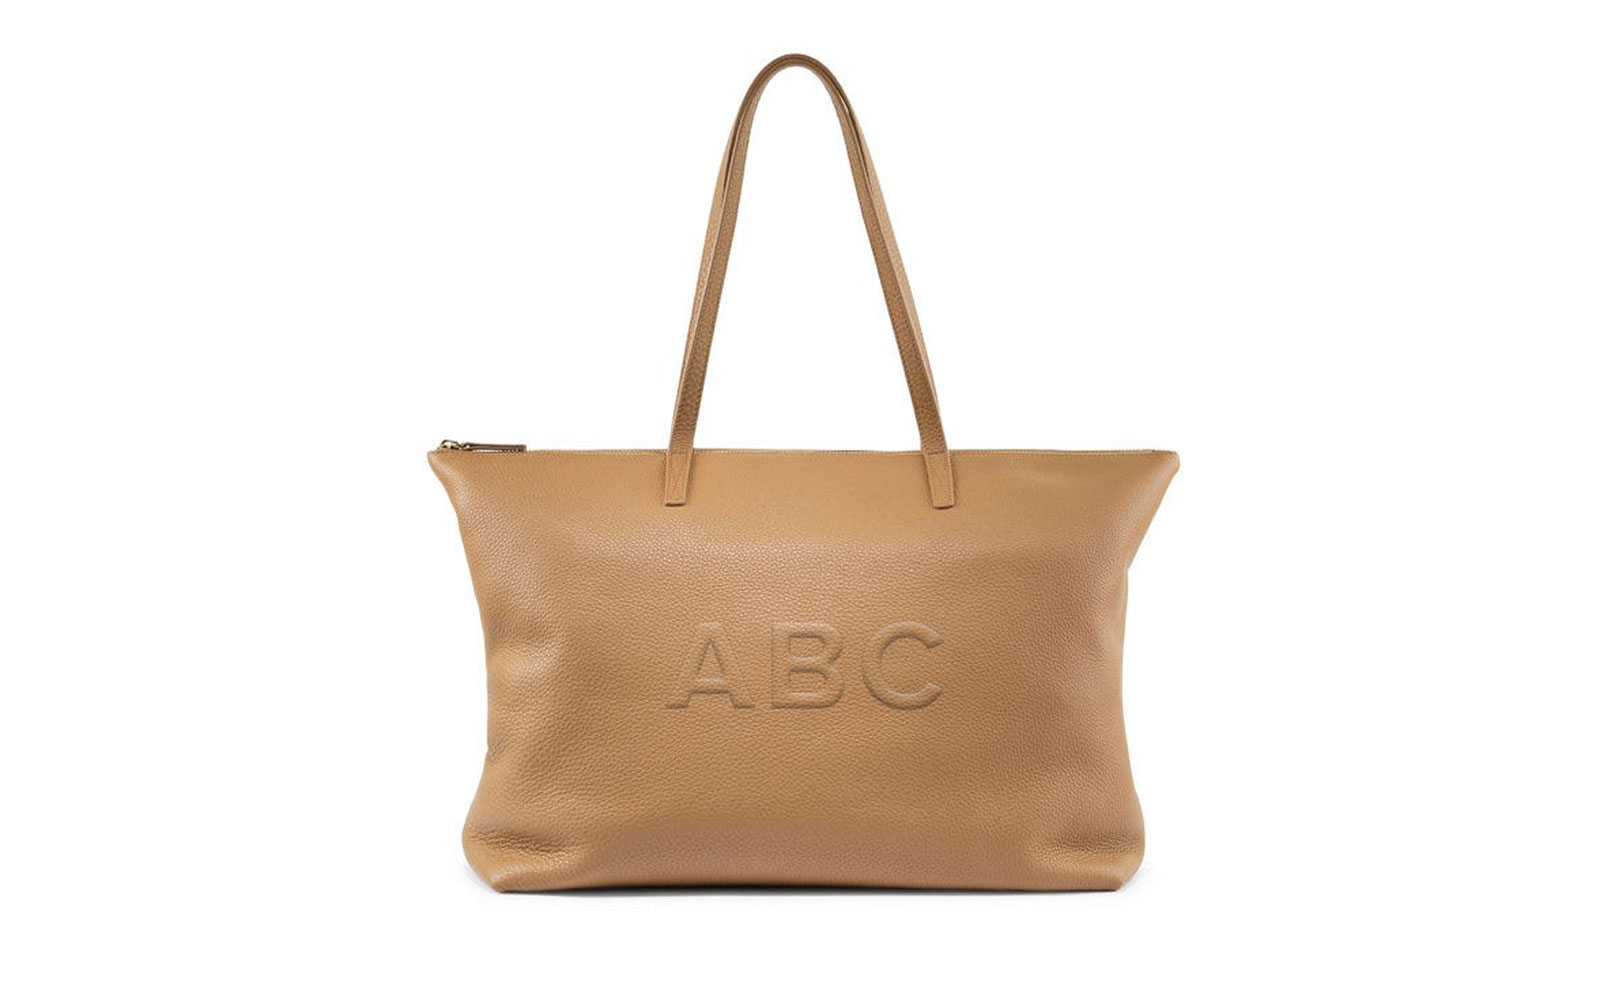 Tan leather monogrammed tote